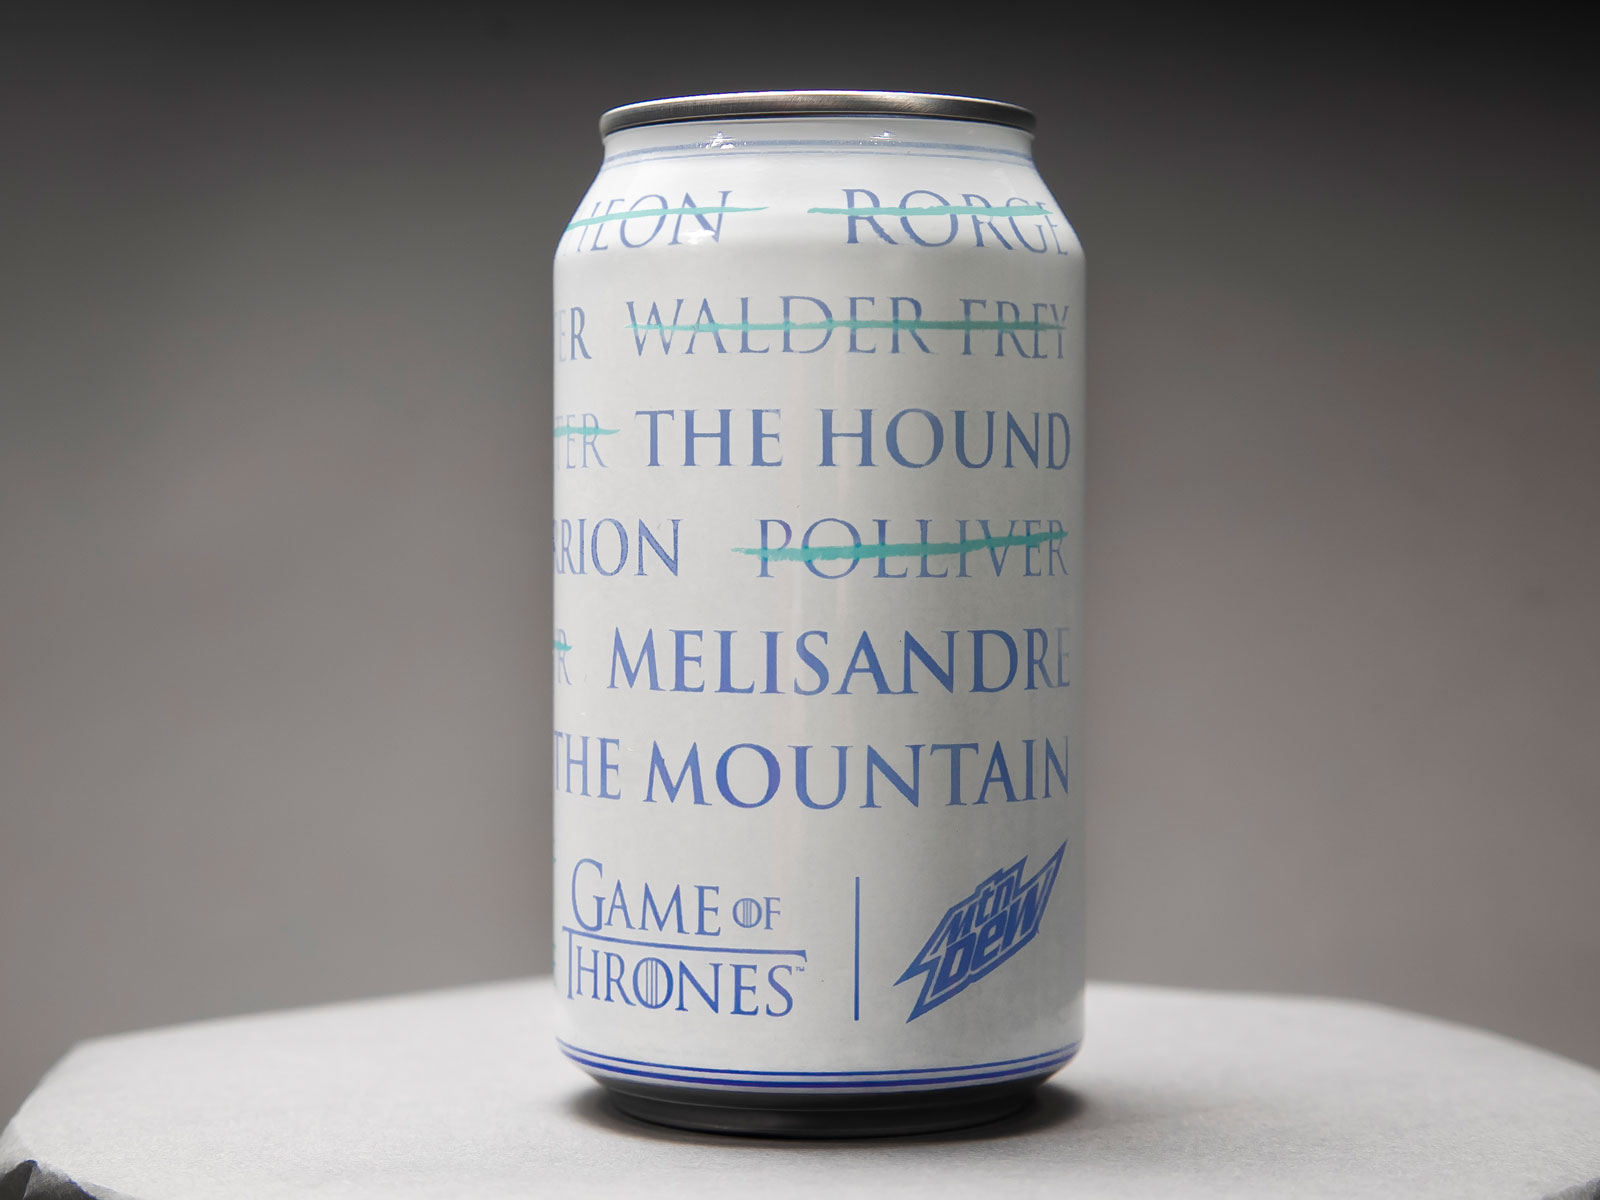 Mountain Dew Cans Turn White for 'Game of Thrones'